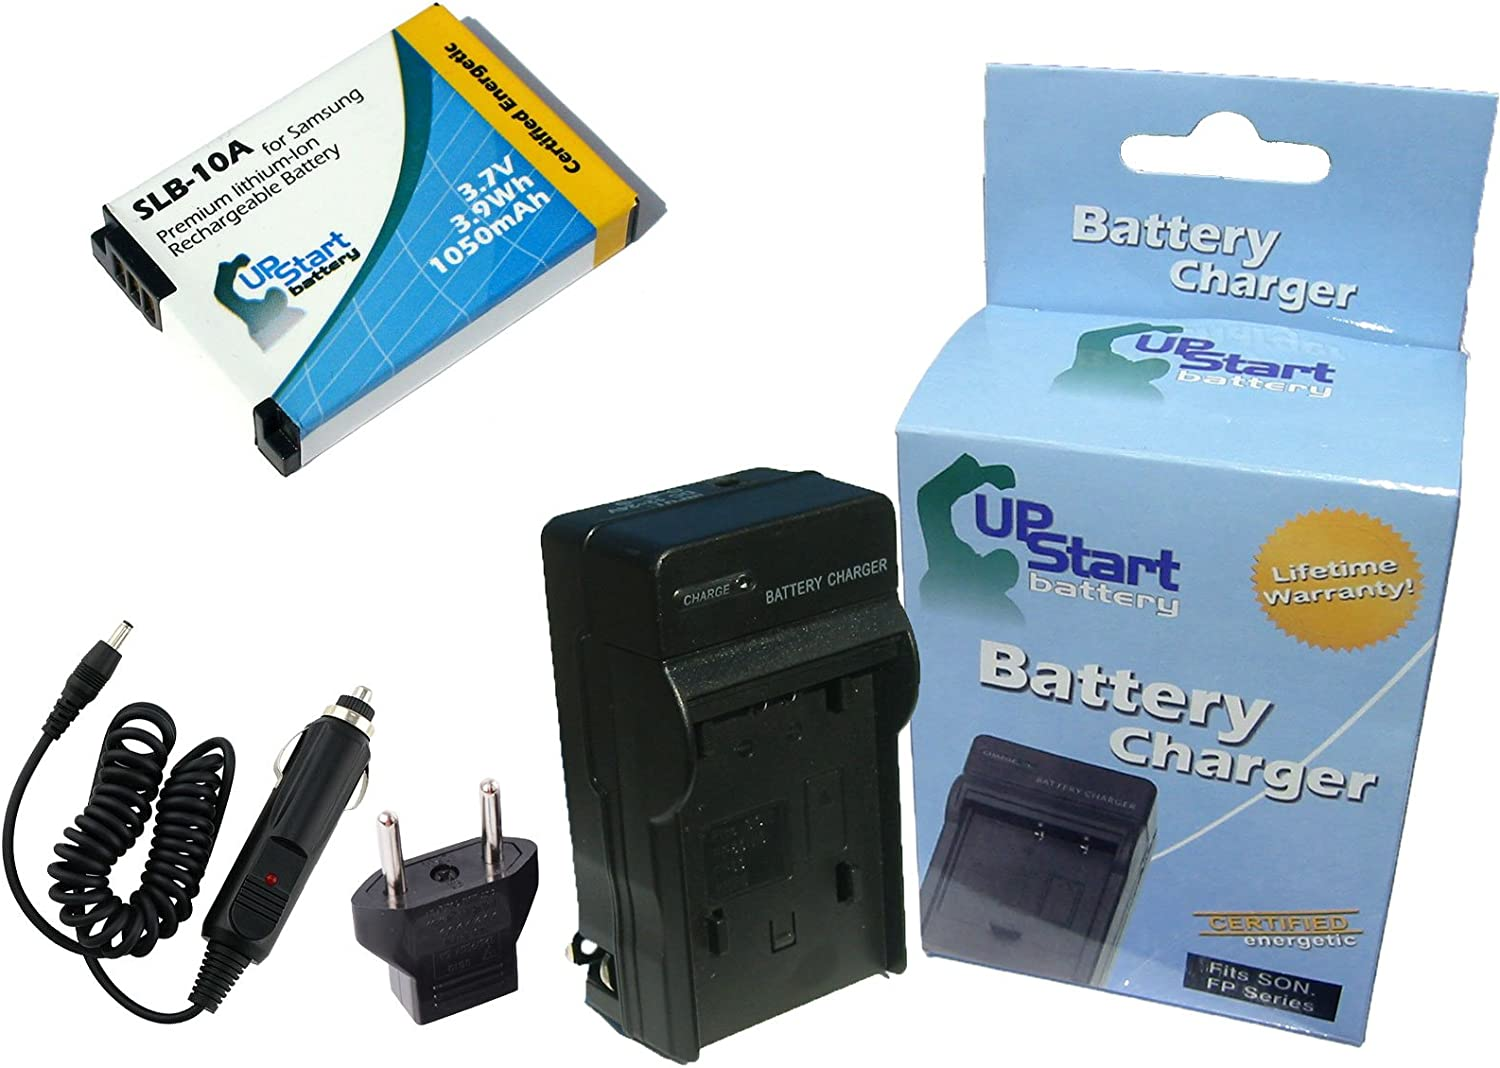 Compatible with Samsung SLB-10A Digital Camera Batteries and Chargers Replacement for Samsung PL65 Battery and Charger with Car Plug and EU Adapter 1050mAh 3.7V Lithium-Ion